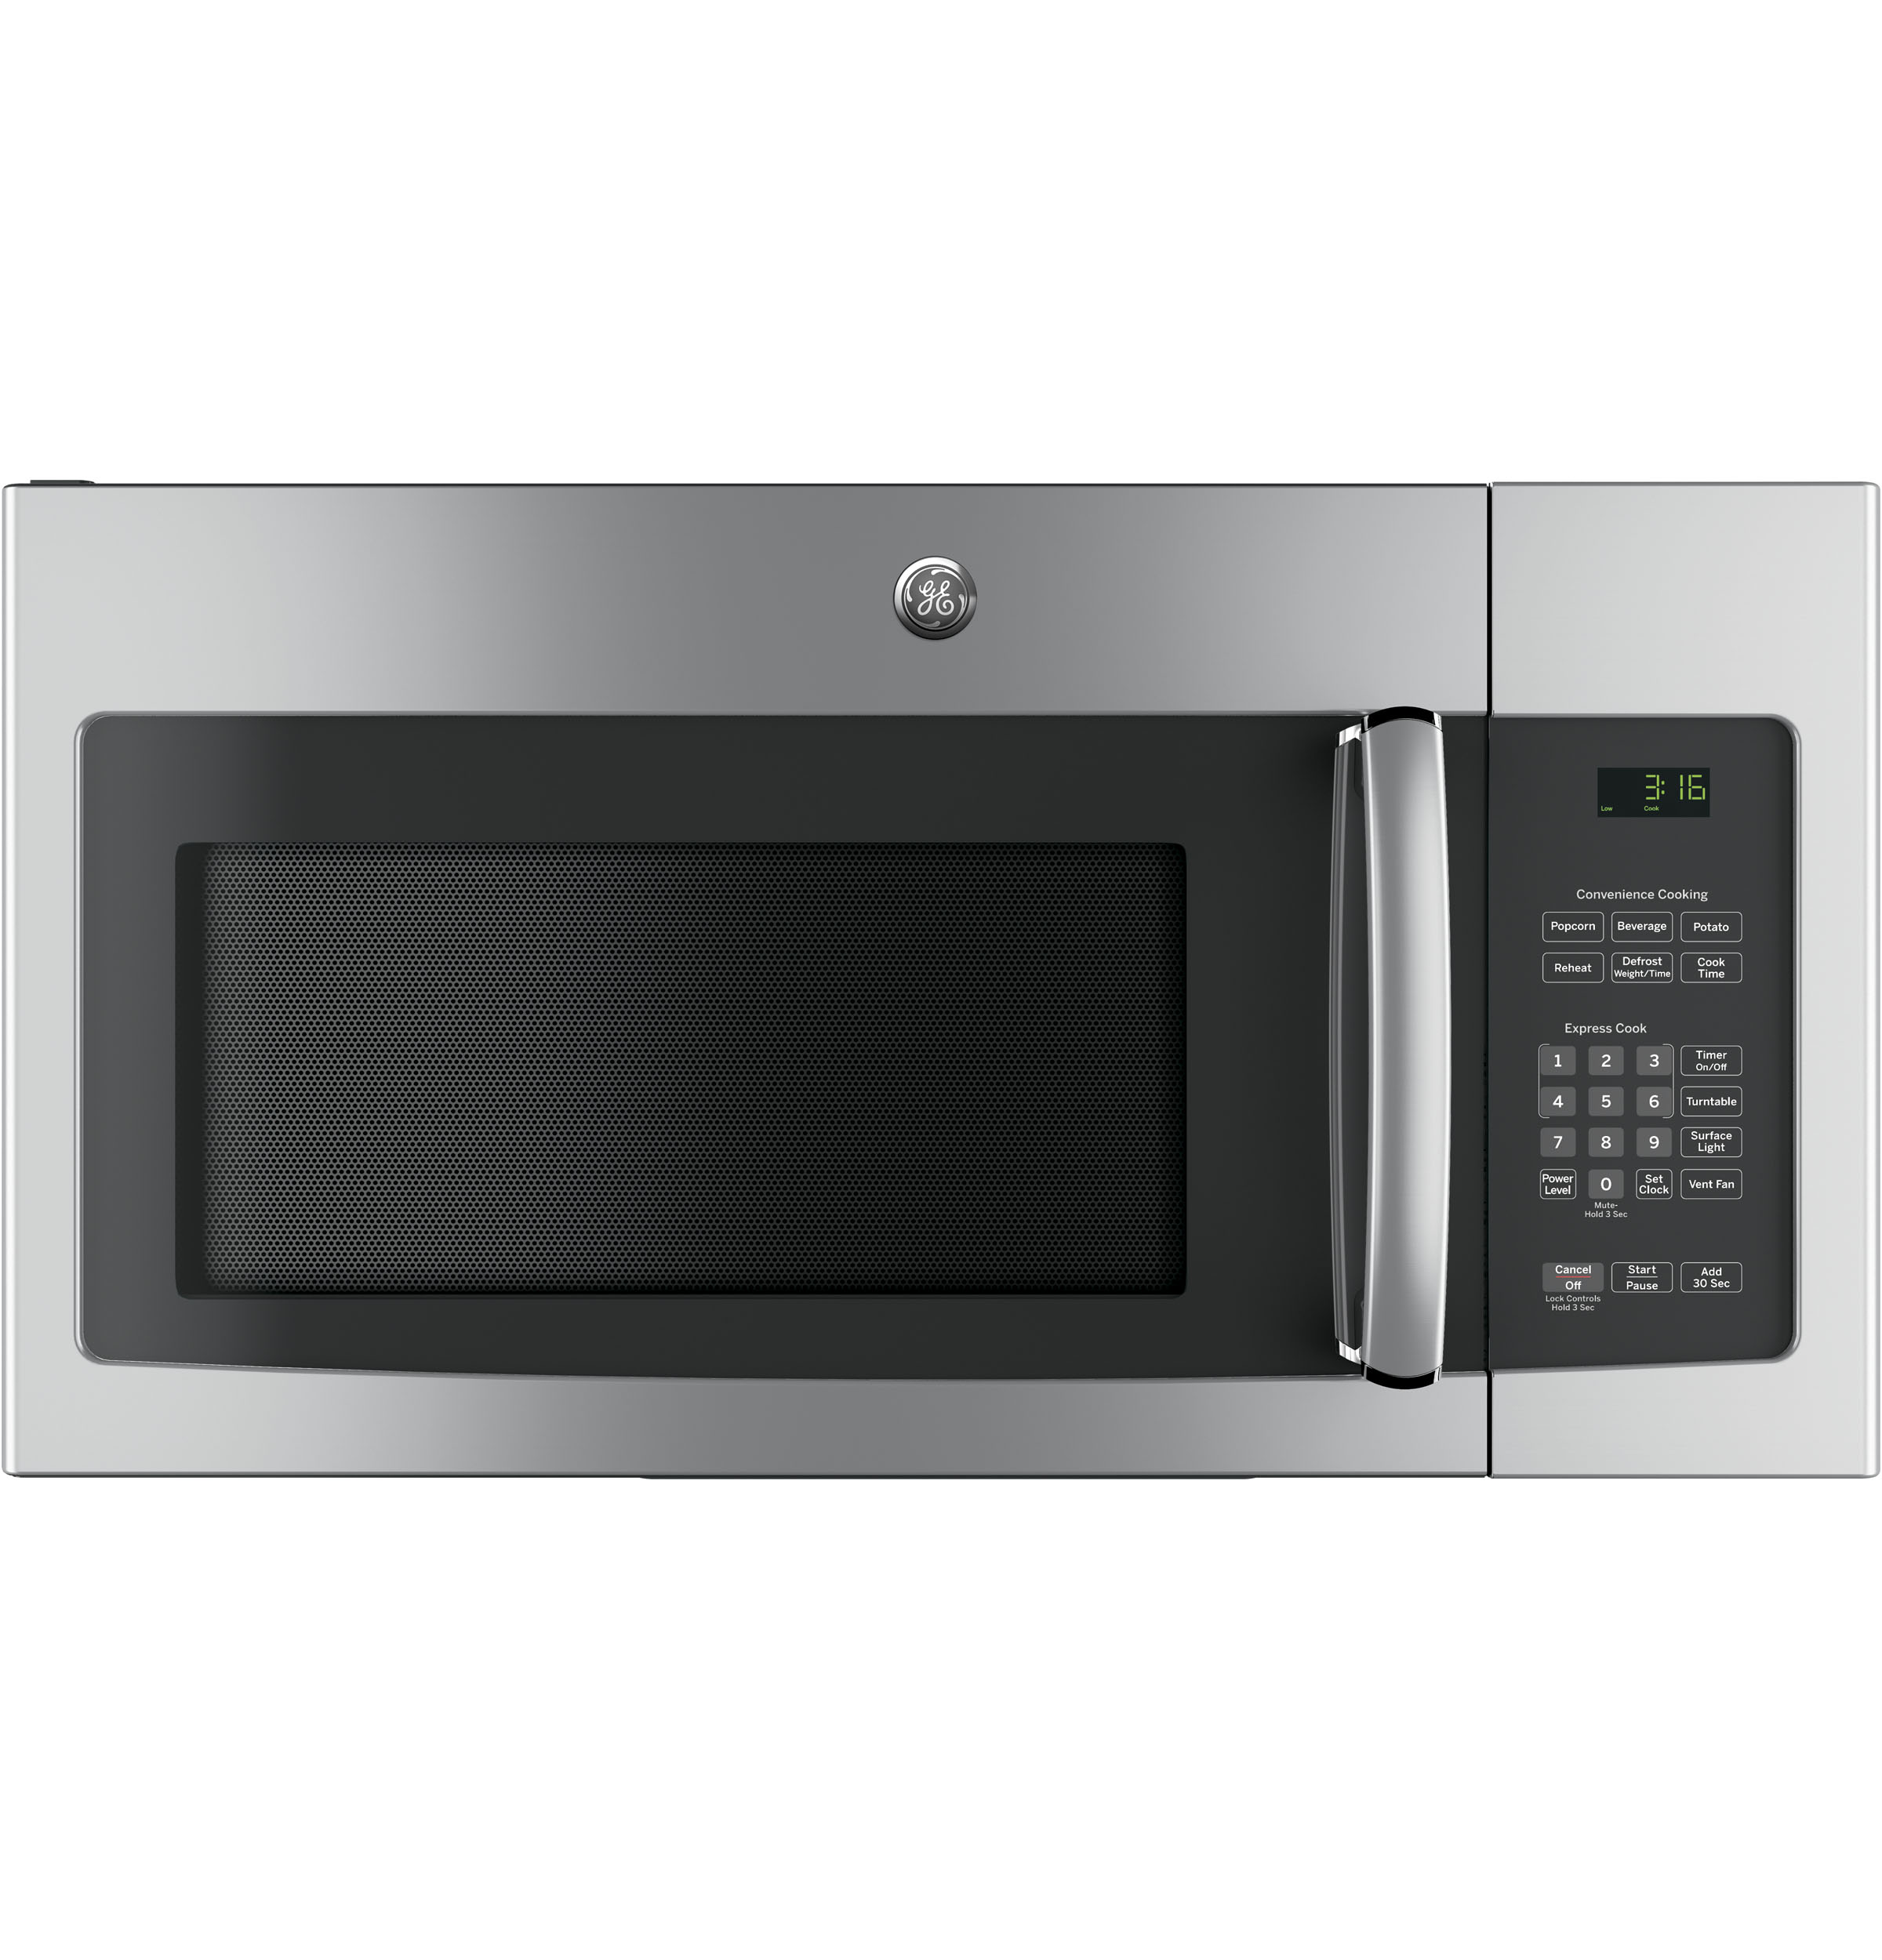 GE GE 1.6 Cu. Ft. Over-the-Range Microwave Oven